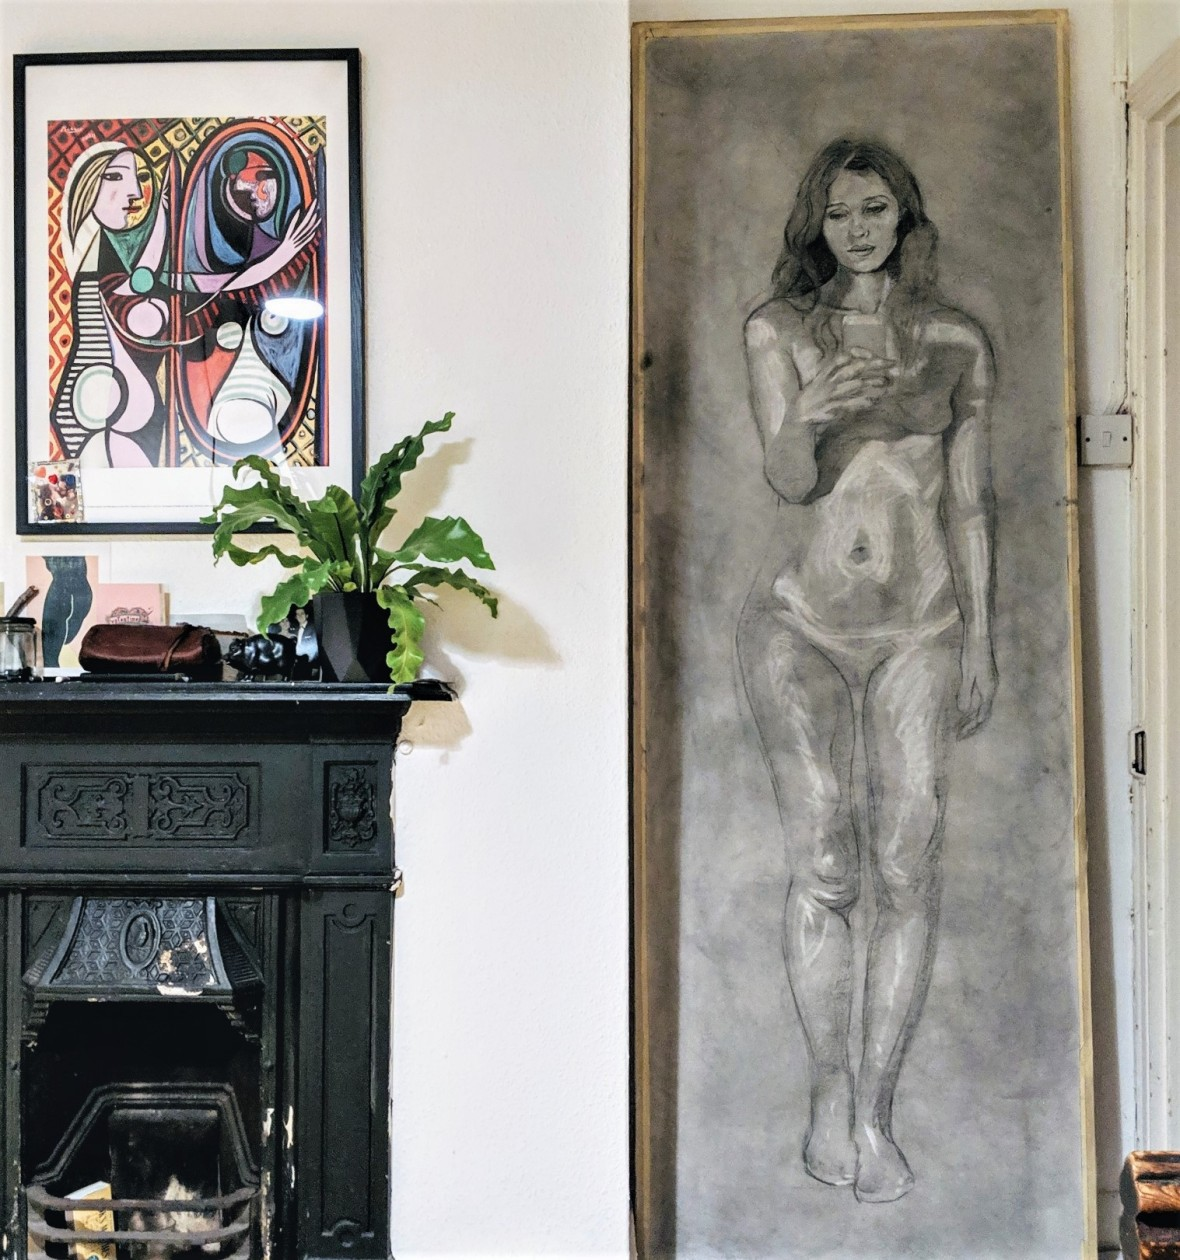 The incomplete life-size drawing of Eve stands up against the studio wall